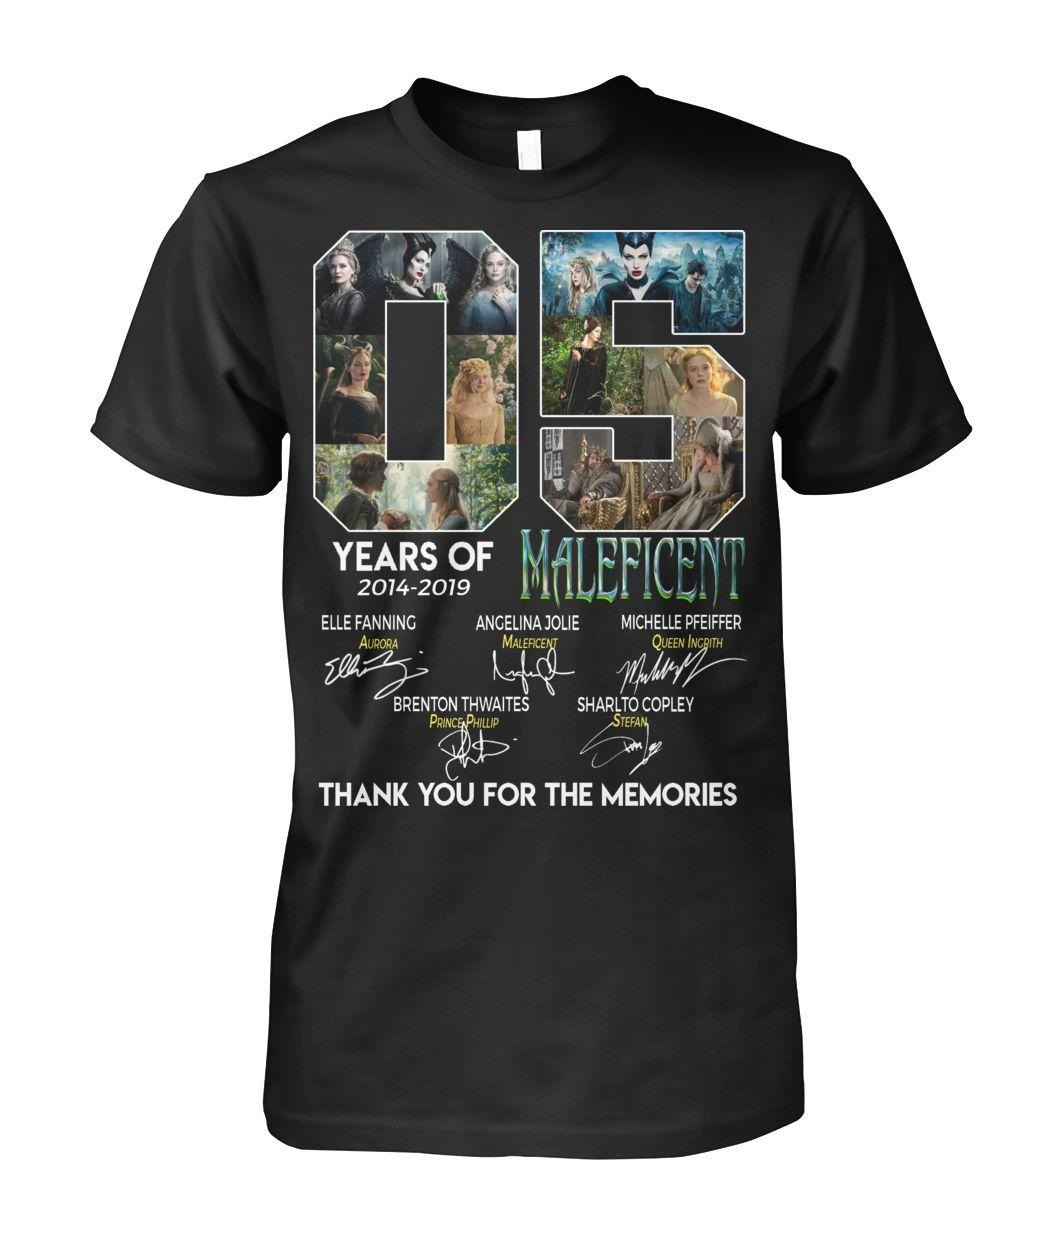 5 Years of Maleficent 2014-2019 15 signatures thank you for the memories shirt